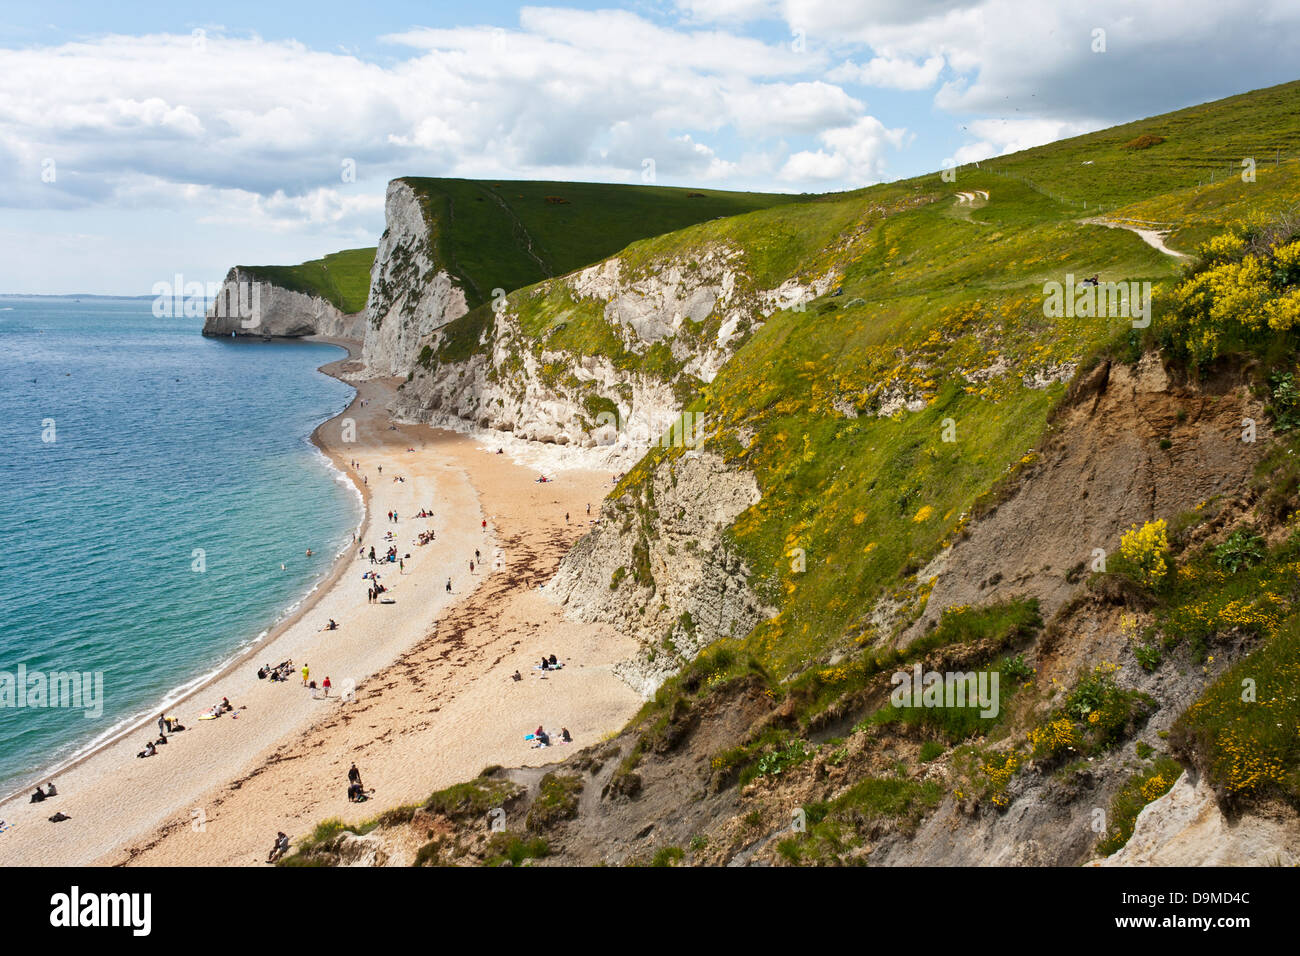 Iconic beach of Durdle Door in southern England in summertime. - Stock Image